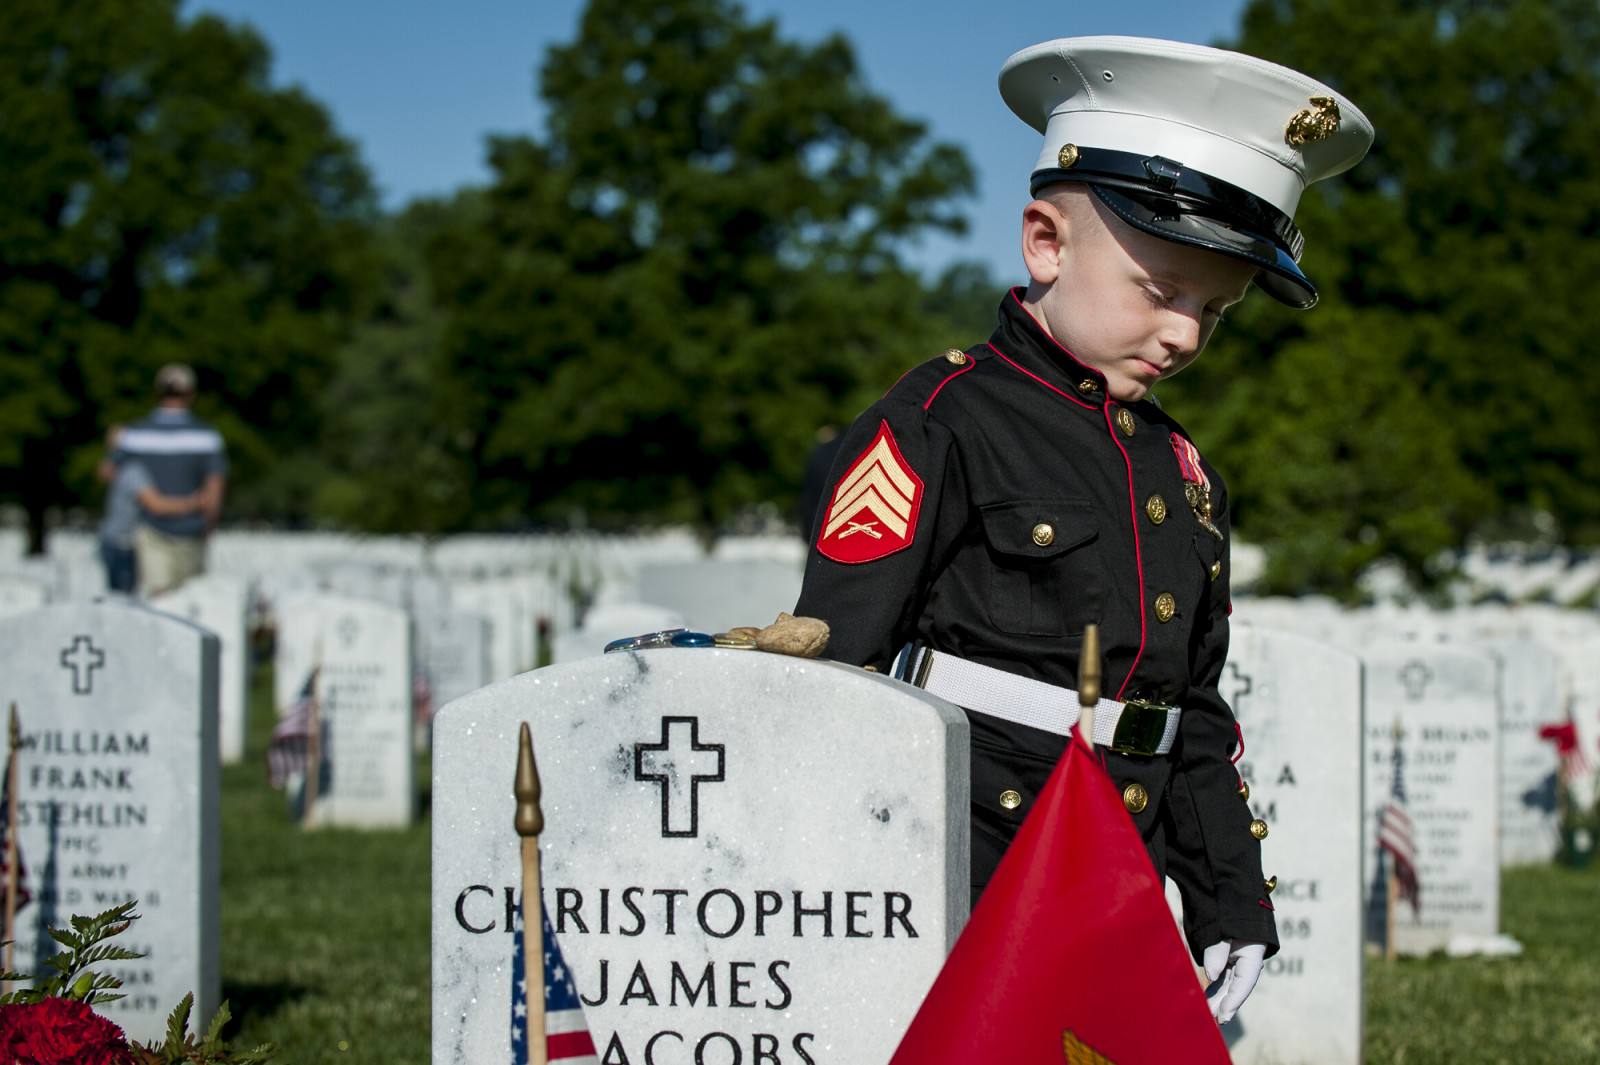 On Memorial Day, Christian Jacobs, 4, of Hertford, NC, walks past the headstone of his father, Marine Sgt. Christopher Jacobs, in Section 60 at Arlington National Cemetery in Arlington, Virginia, USA, on 25 May 2015. (Pete Marovich/ European PressPhoto Agency)